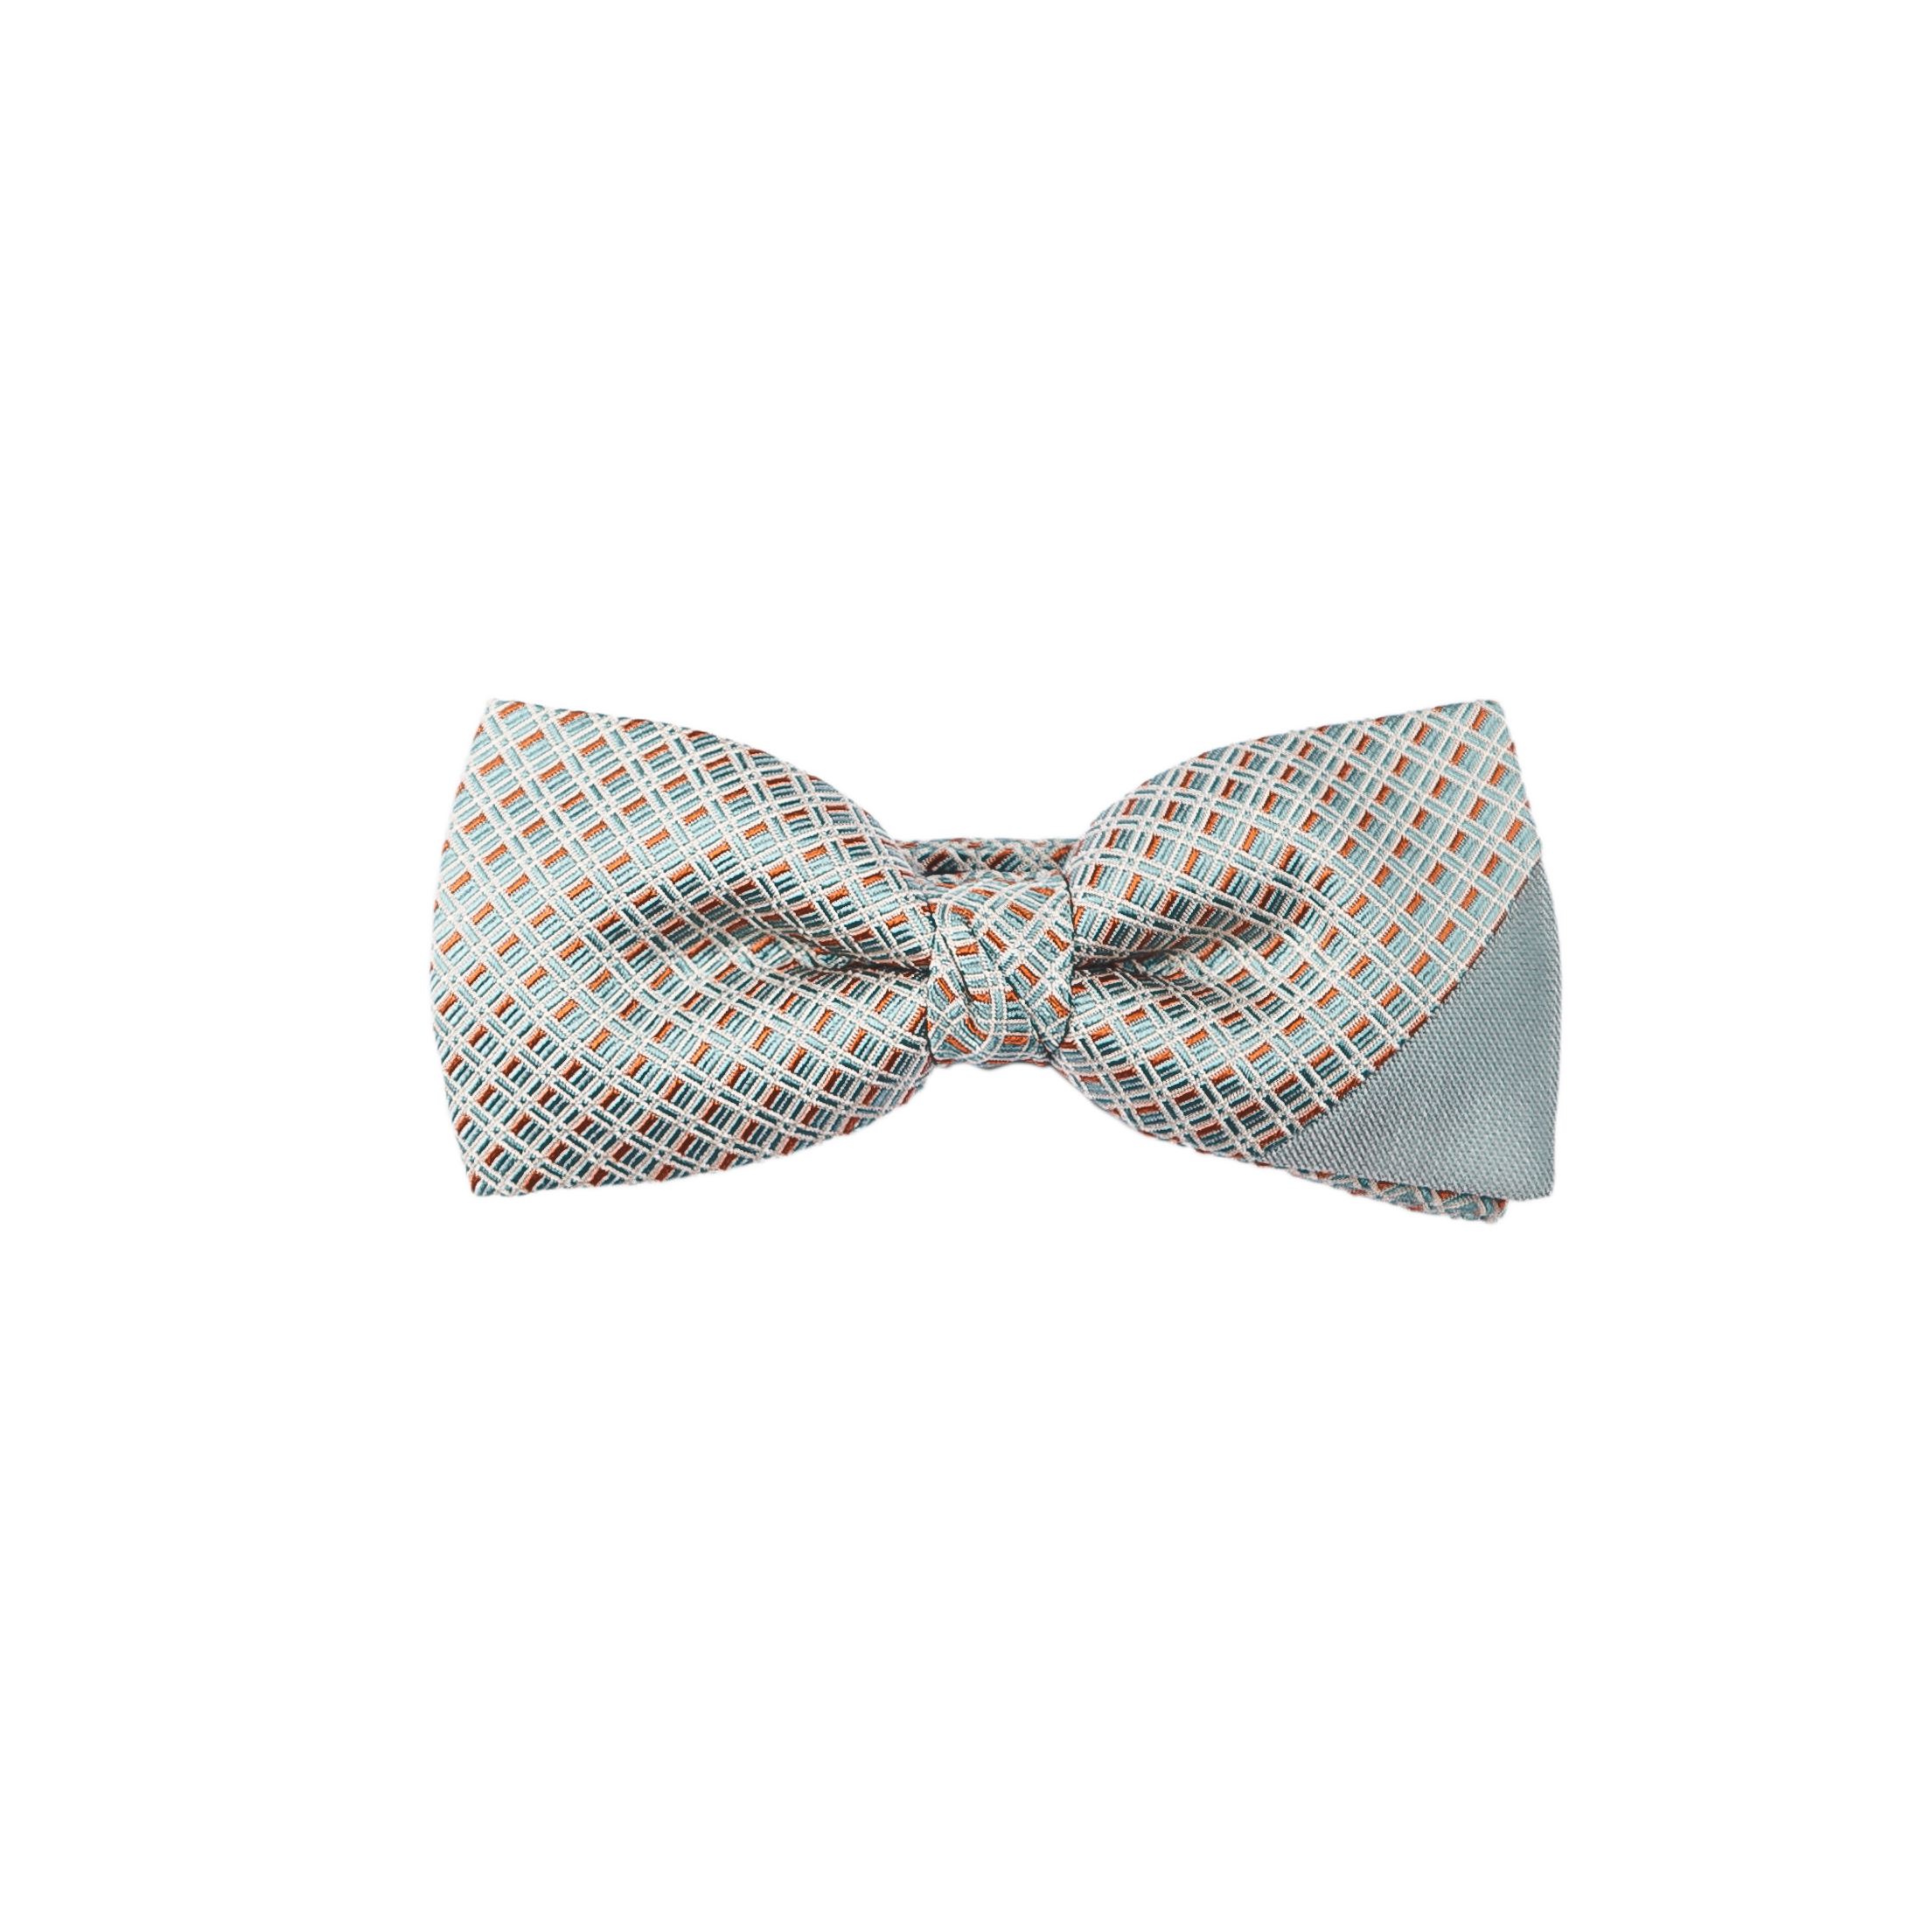 A creamy and silky tie with a turquoise solid silk, combined with a patterned turquoise and caramel silk.